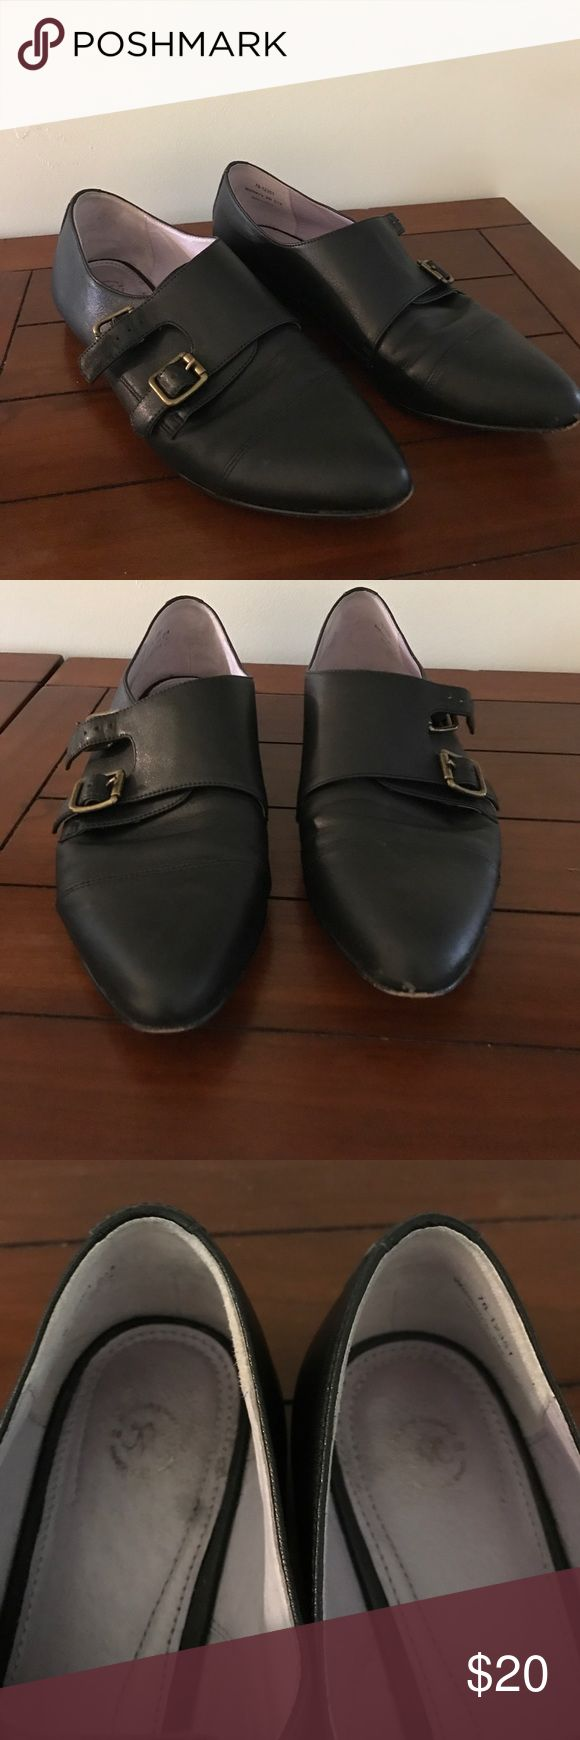 Johnson and Murphy black loafers. Good used condition. Small scuff on toe but lots of wear left. Size 9 but fits more like 8.5. Johnston & Murphy Shoes Flats & Loafers